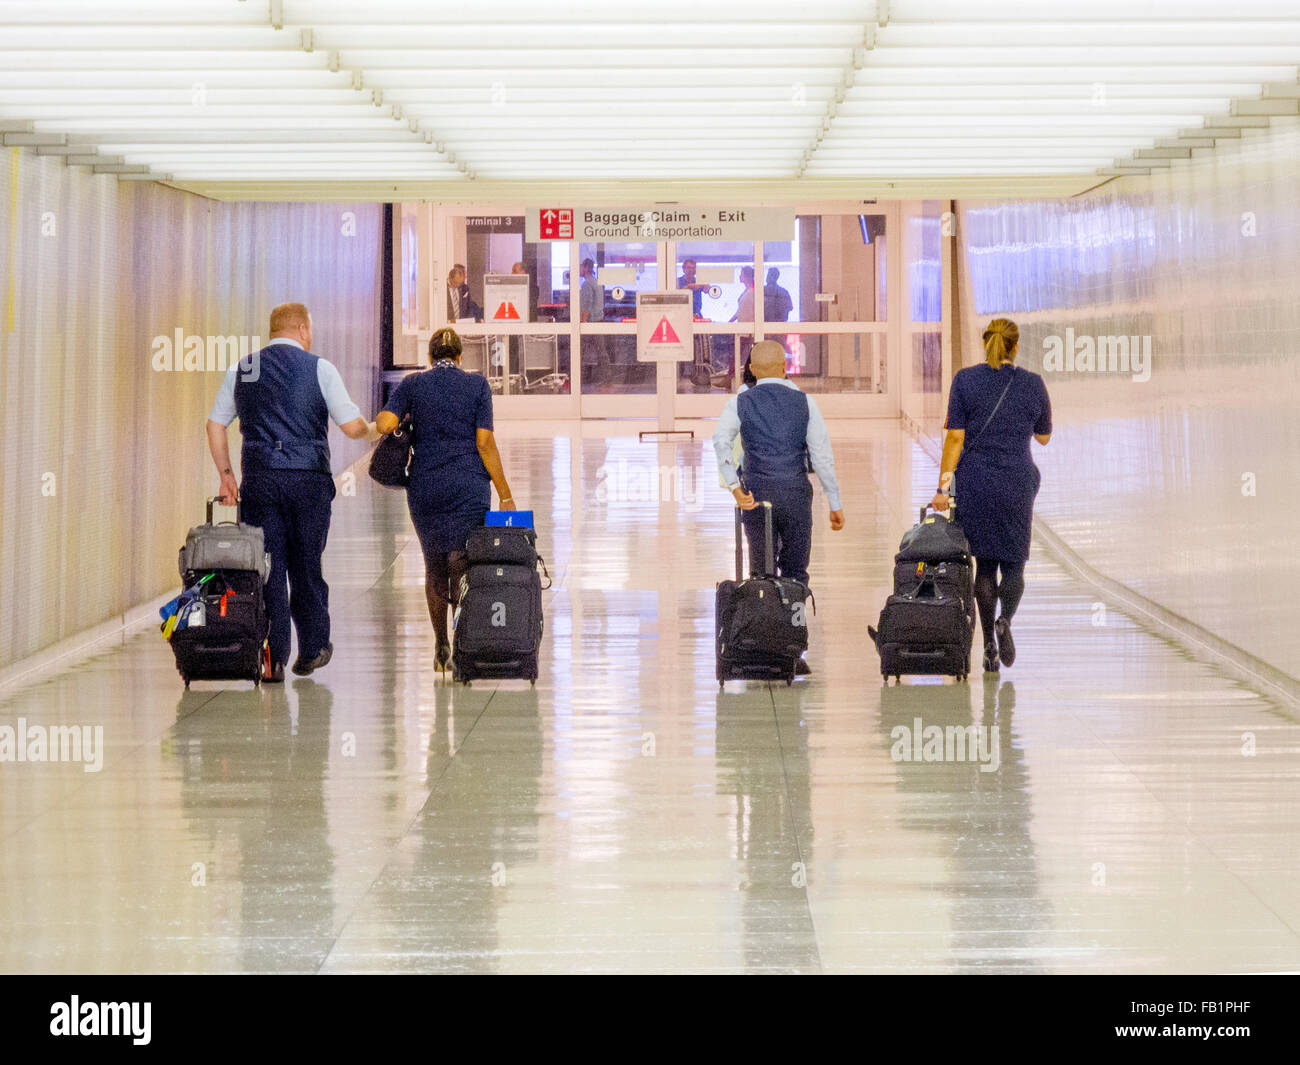 Carrying their luggage on rolling carts, a uniformed aircrew heads for the arrival gate at Los Angeles International - Stock Image